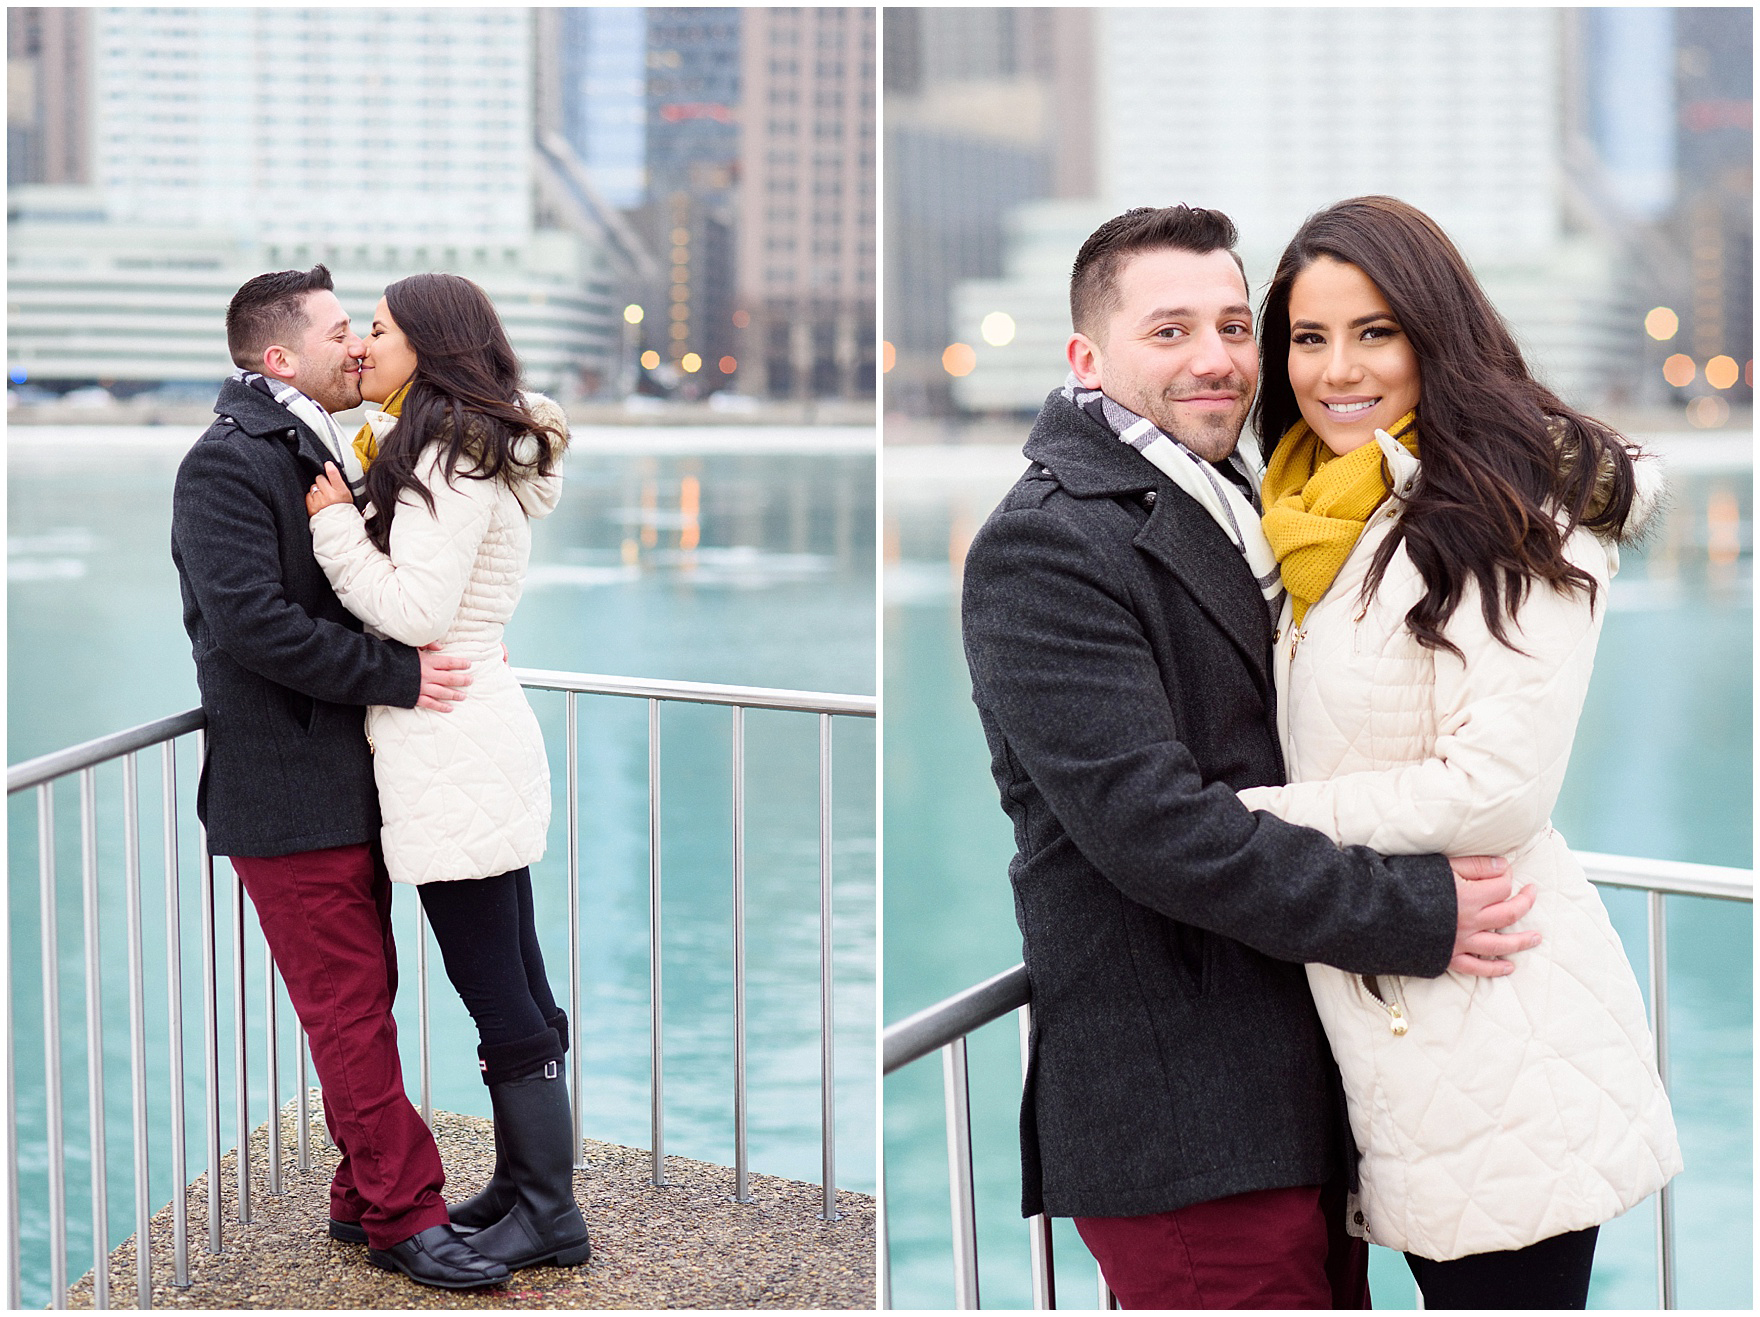 Portraits of the newly-engaged couple after a Chicago skyline proposal.